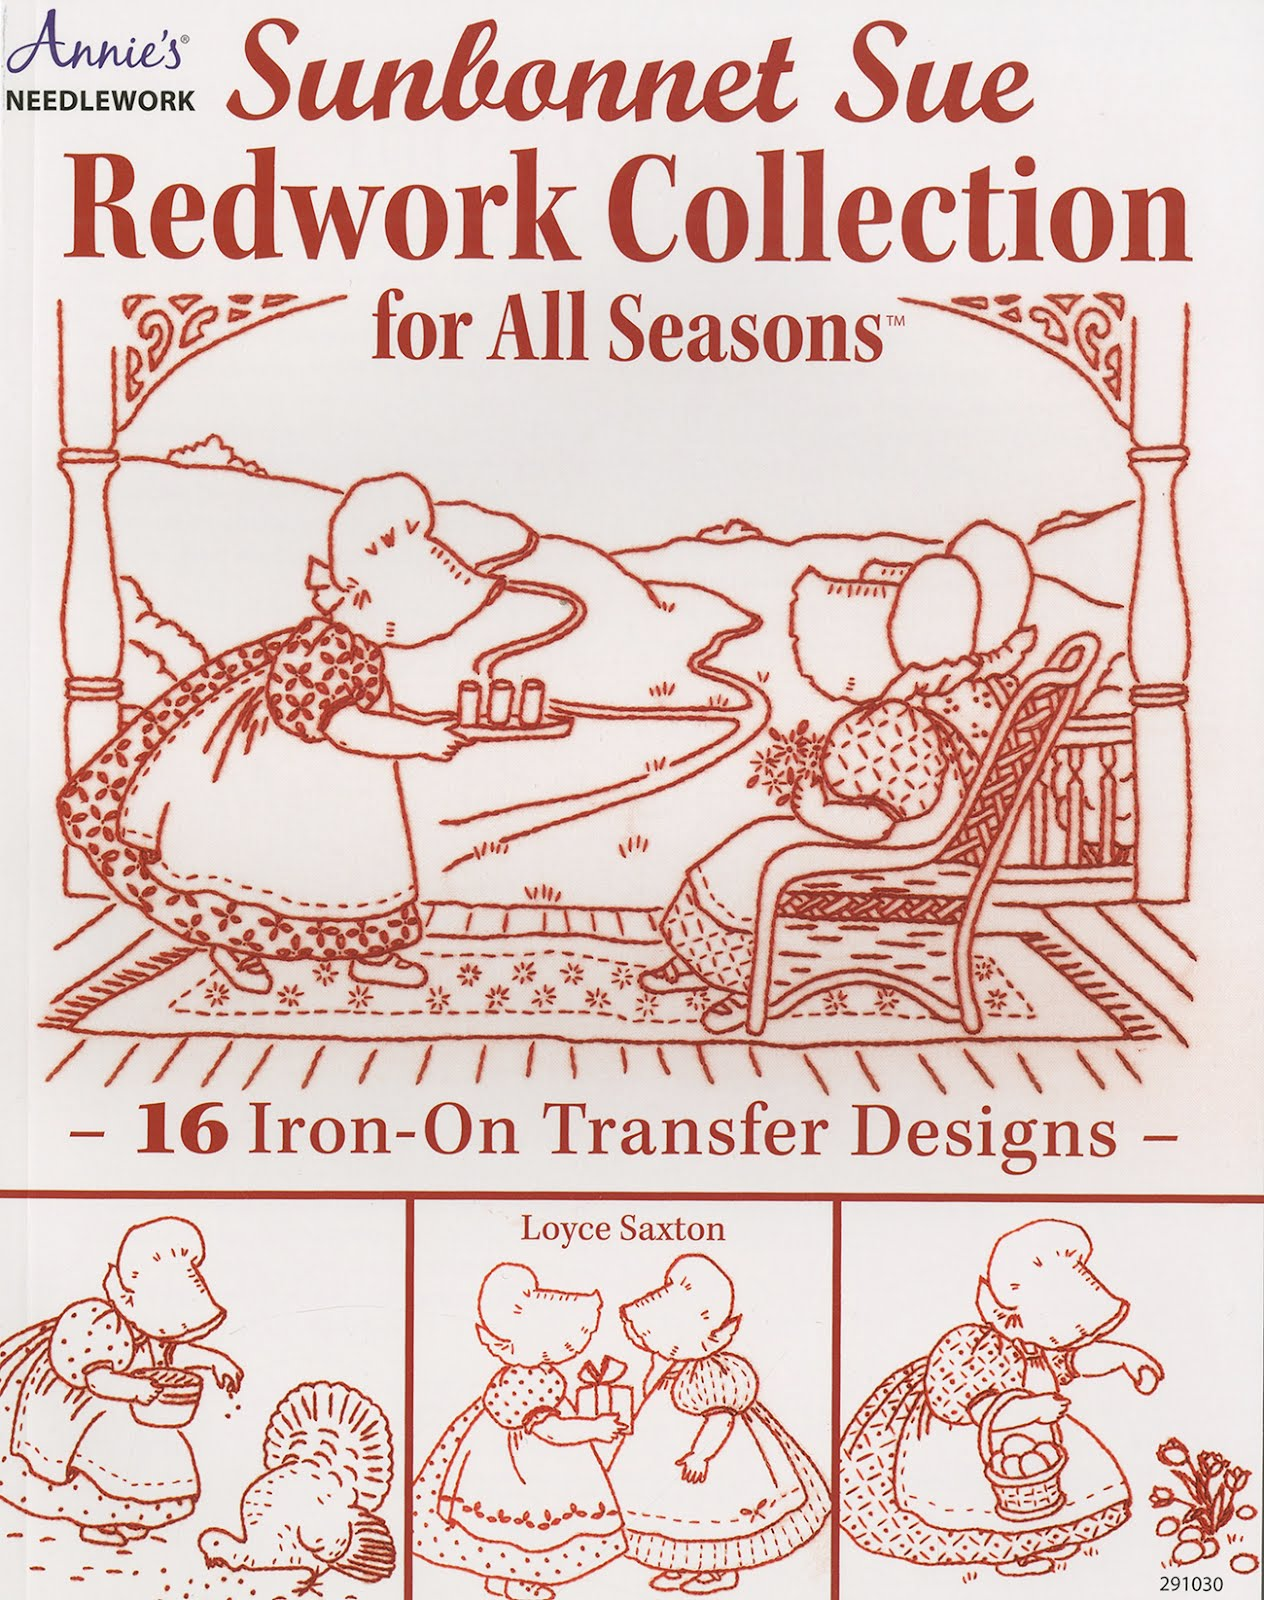 Sunbonnet Collection Redwork